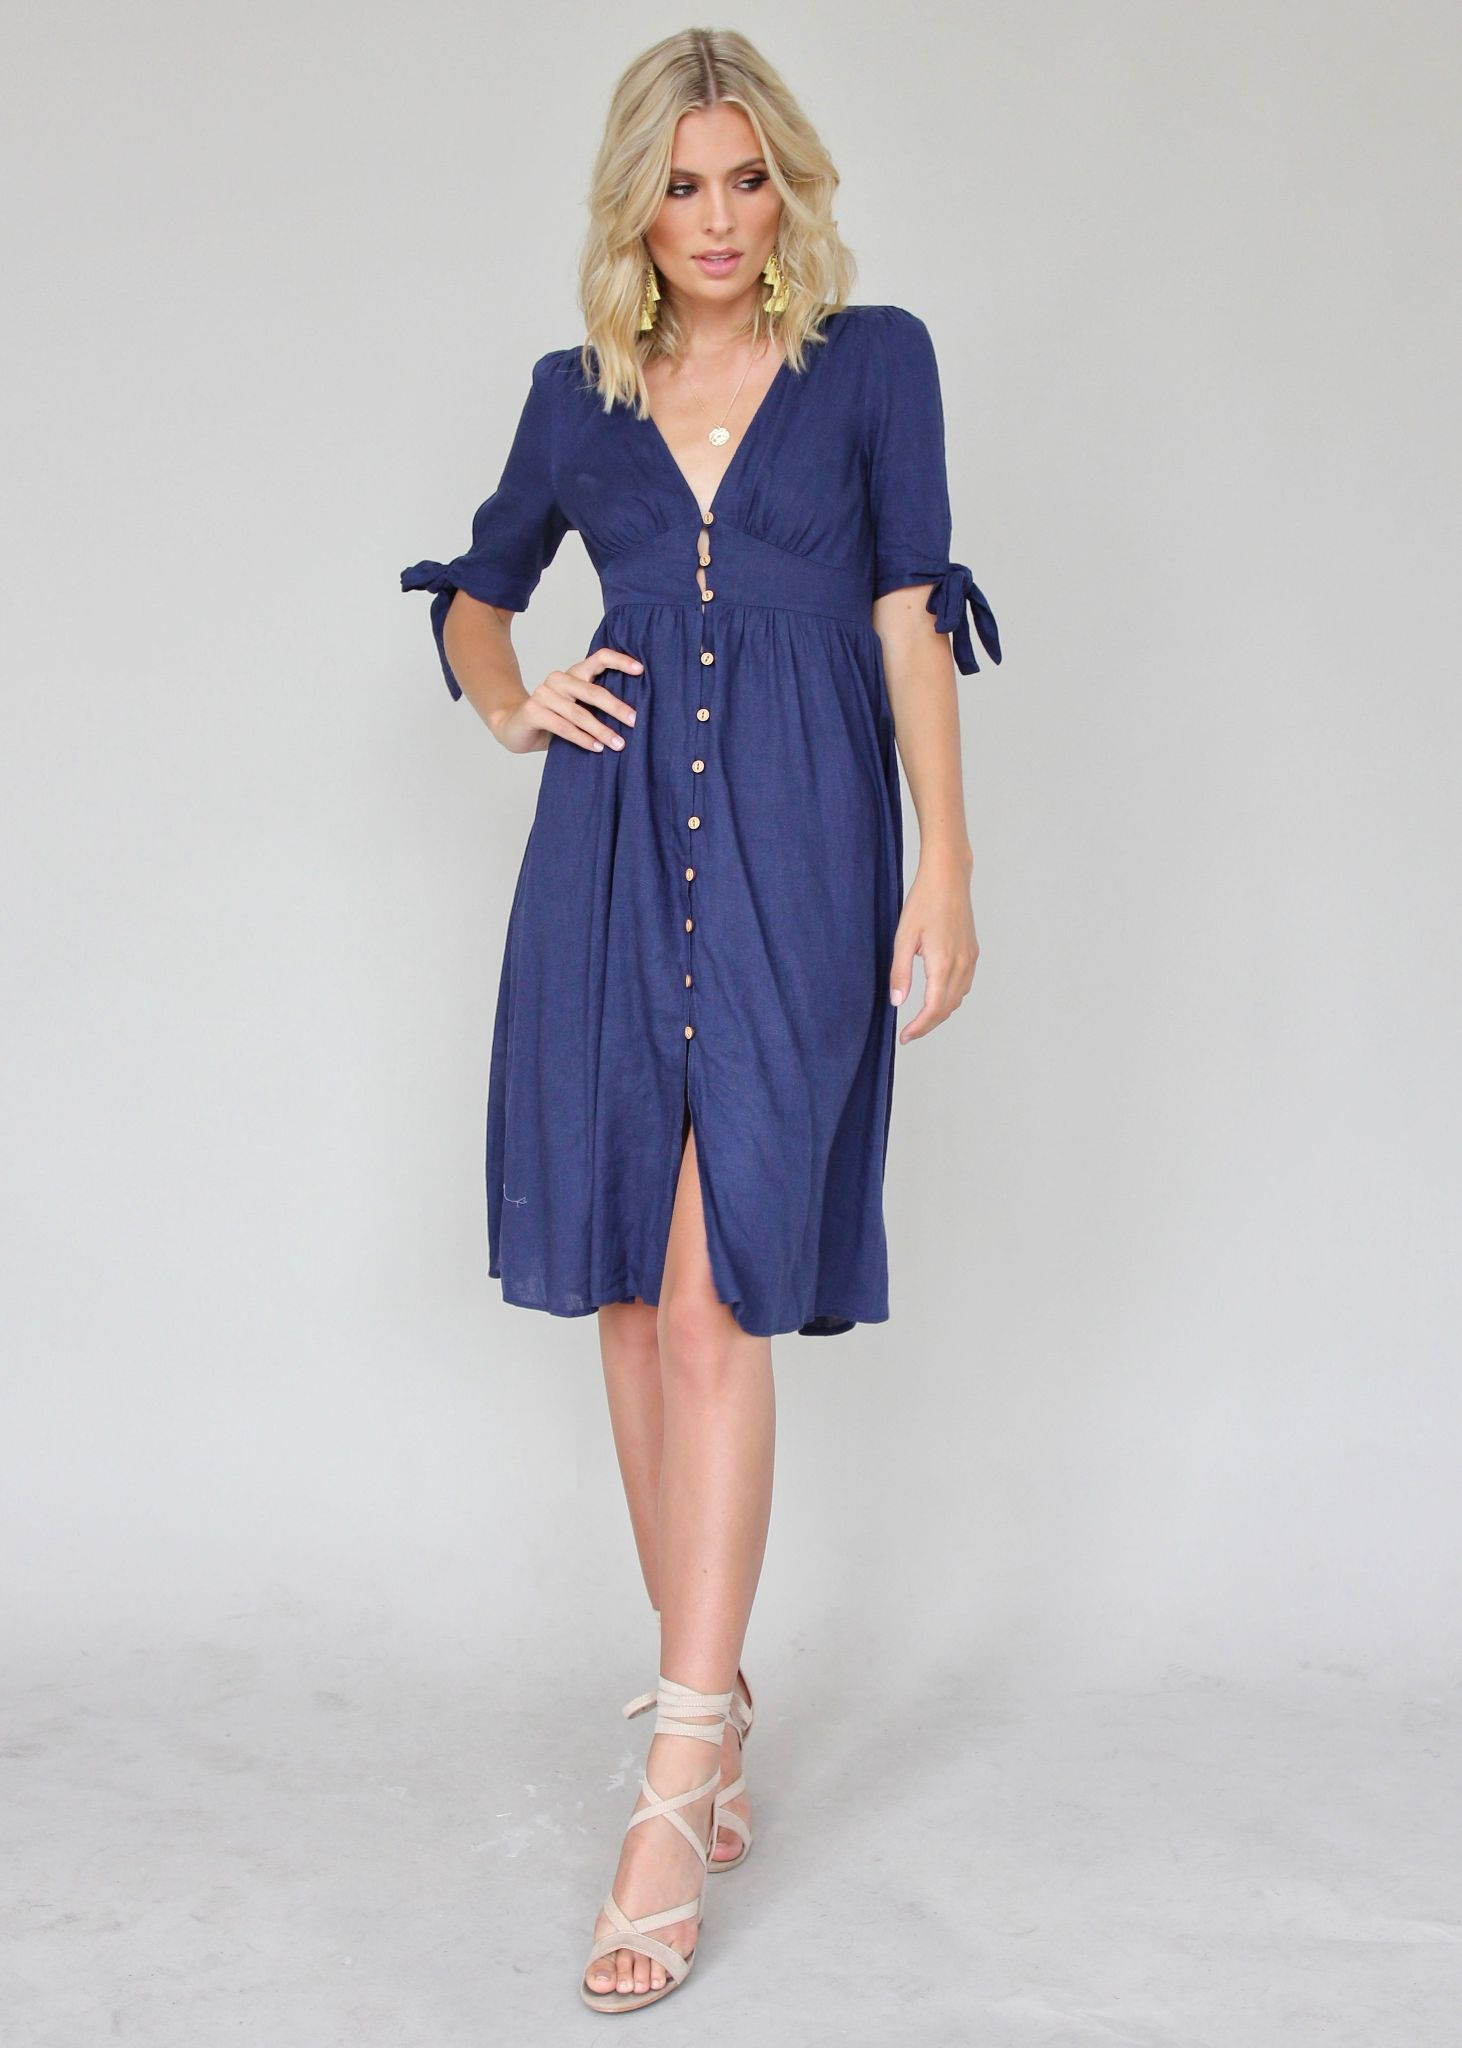 Future Forever Midi Dress - Navy